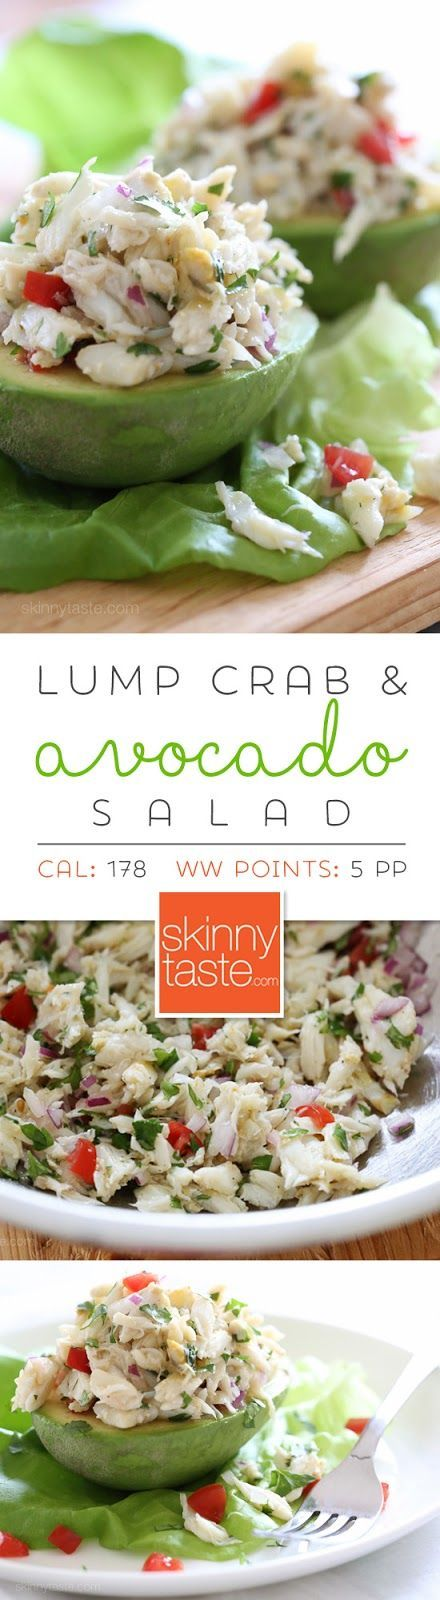 Avocado and Lump Crab Salad – avocado stuffed with a light lump crab meat – the perfect summer low-carb salad!